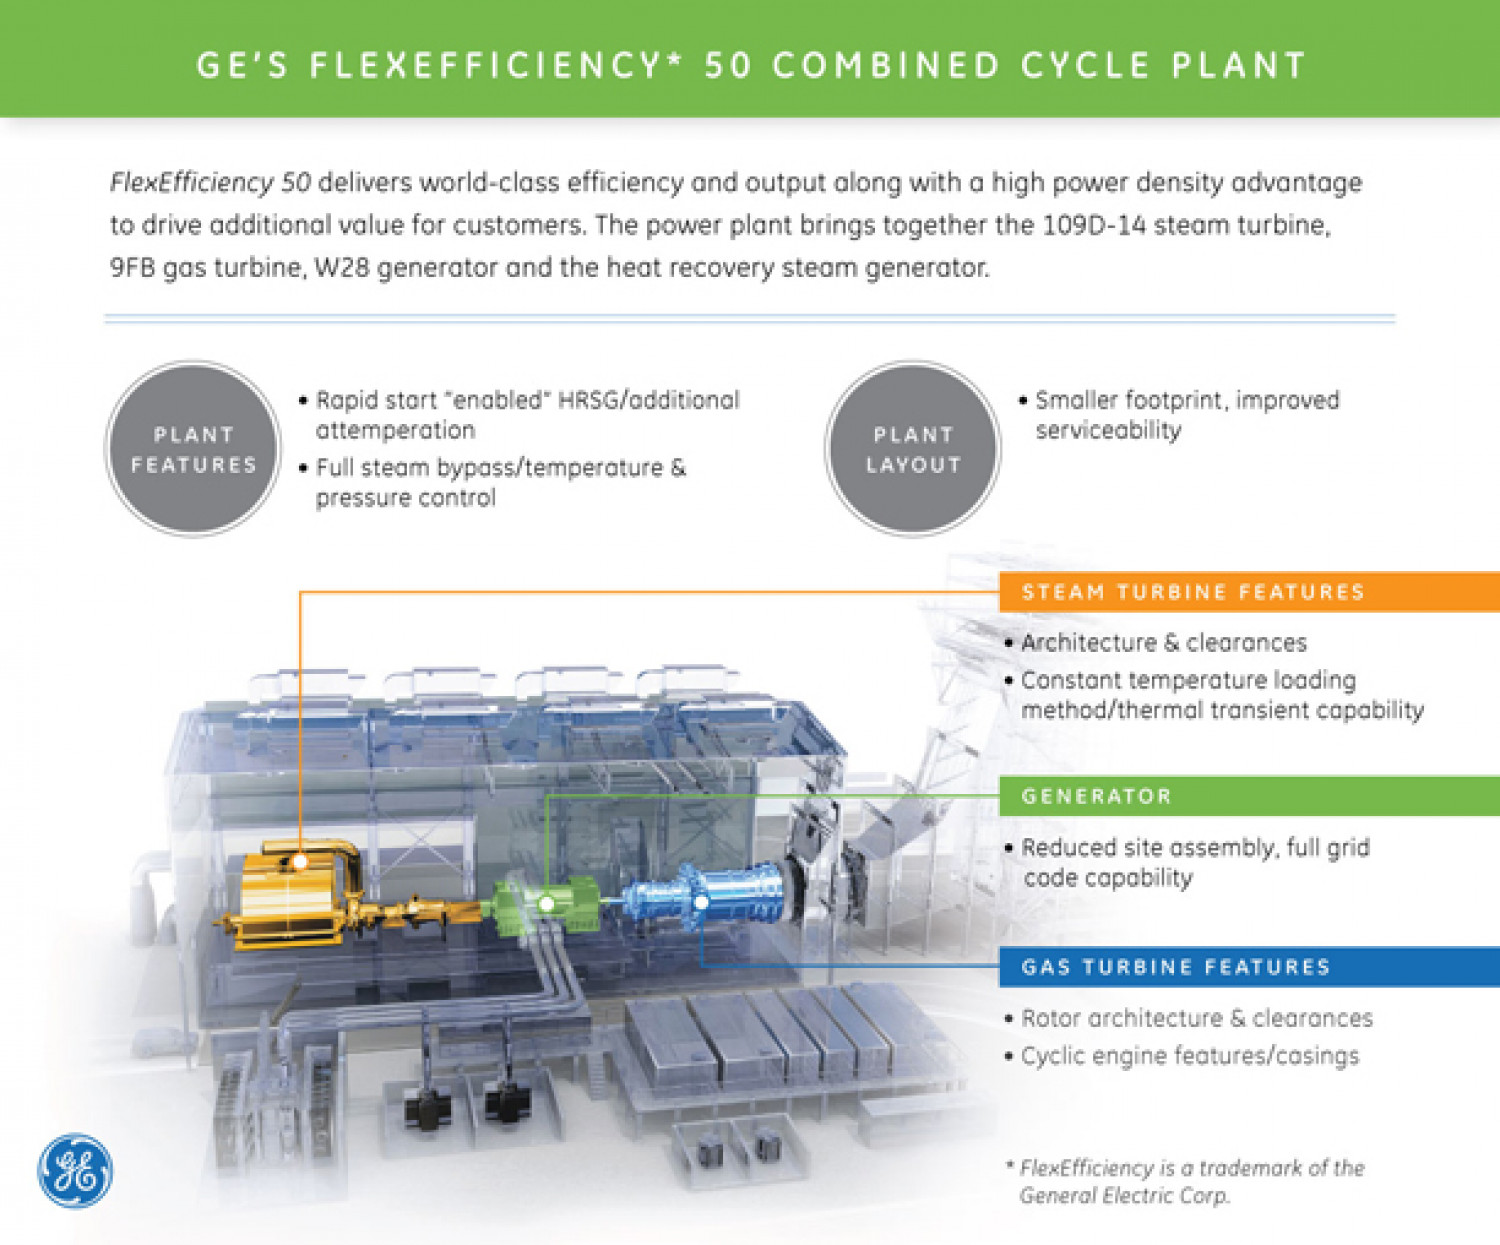 Ge Flexeficiency 50 Power Plant General Layout Infographic